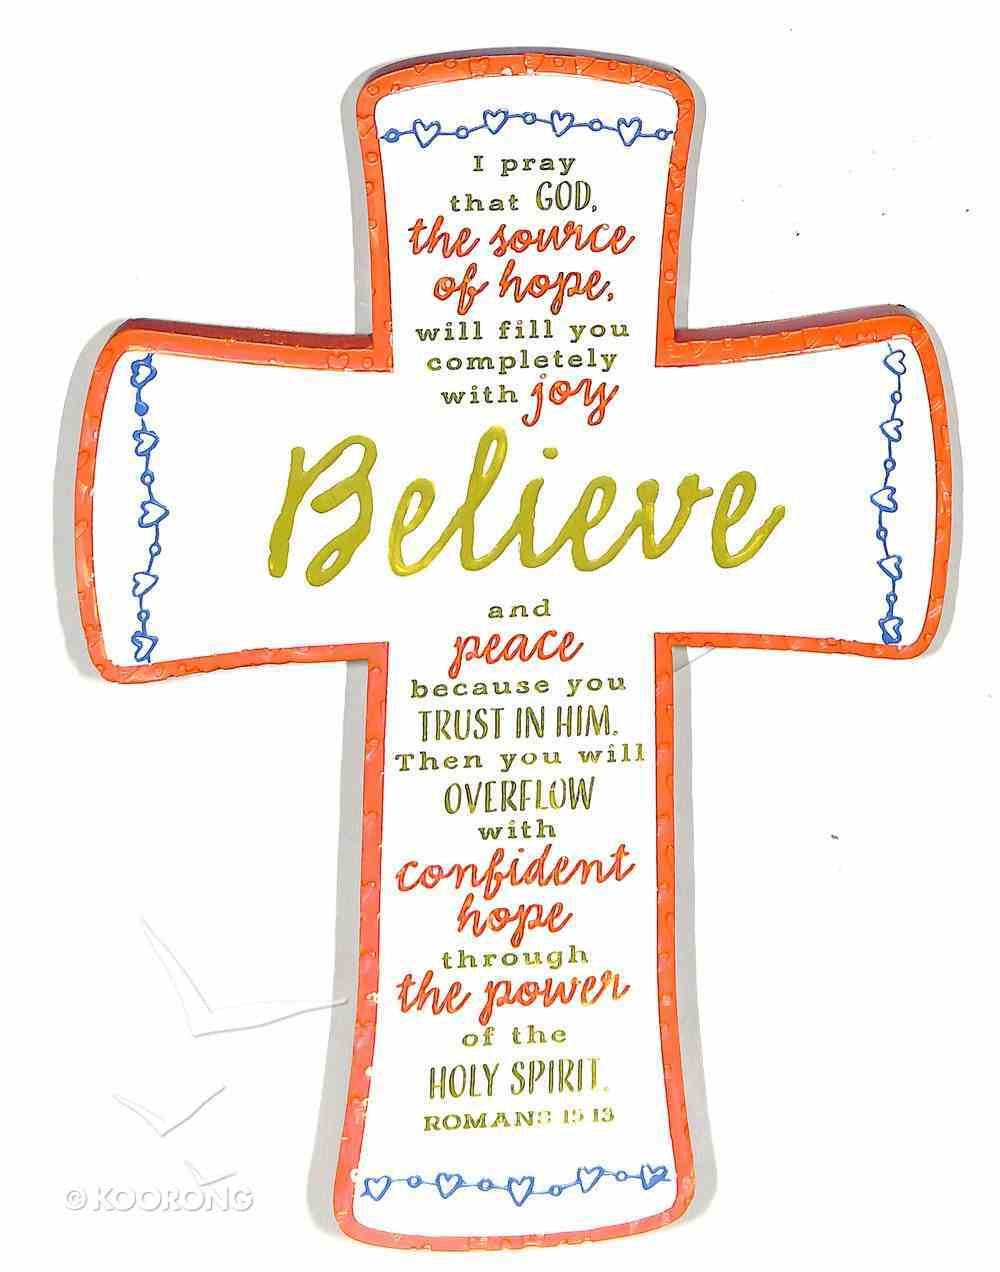 Cross Embroidered: Believe Orange/Yellow/Blue/White (Romans 15:13) Homeware